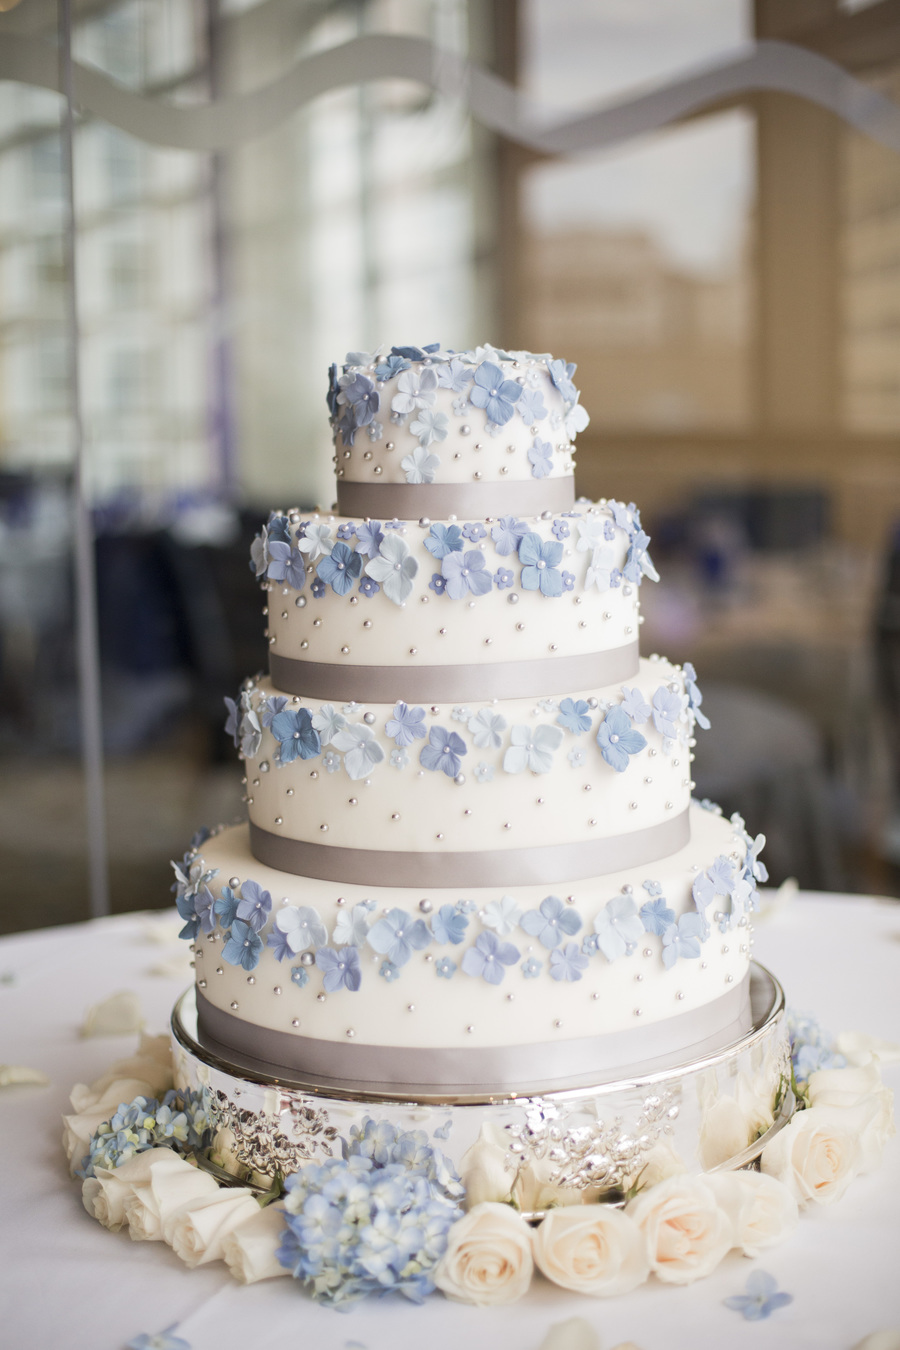 My Own Wedding Cake - CakeCentral.com